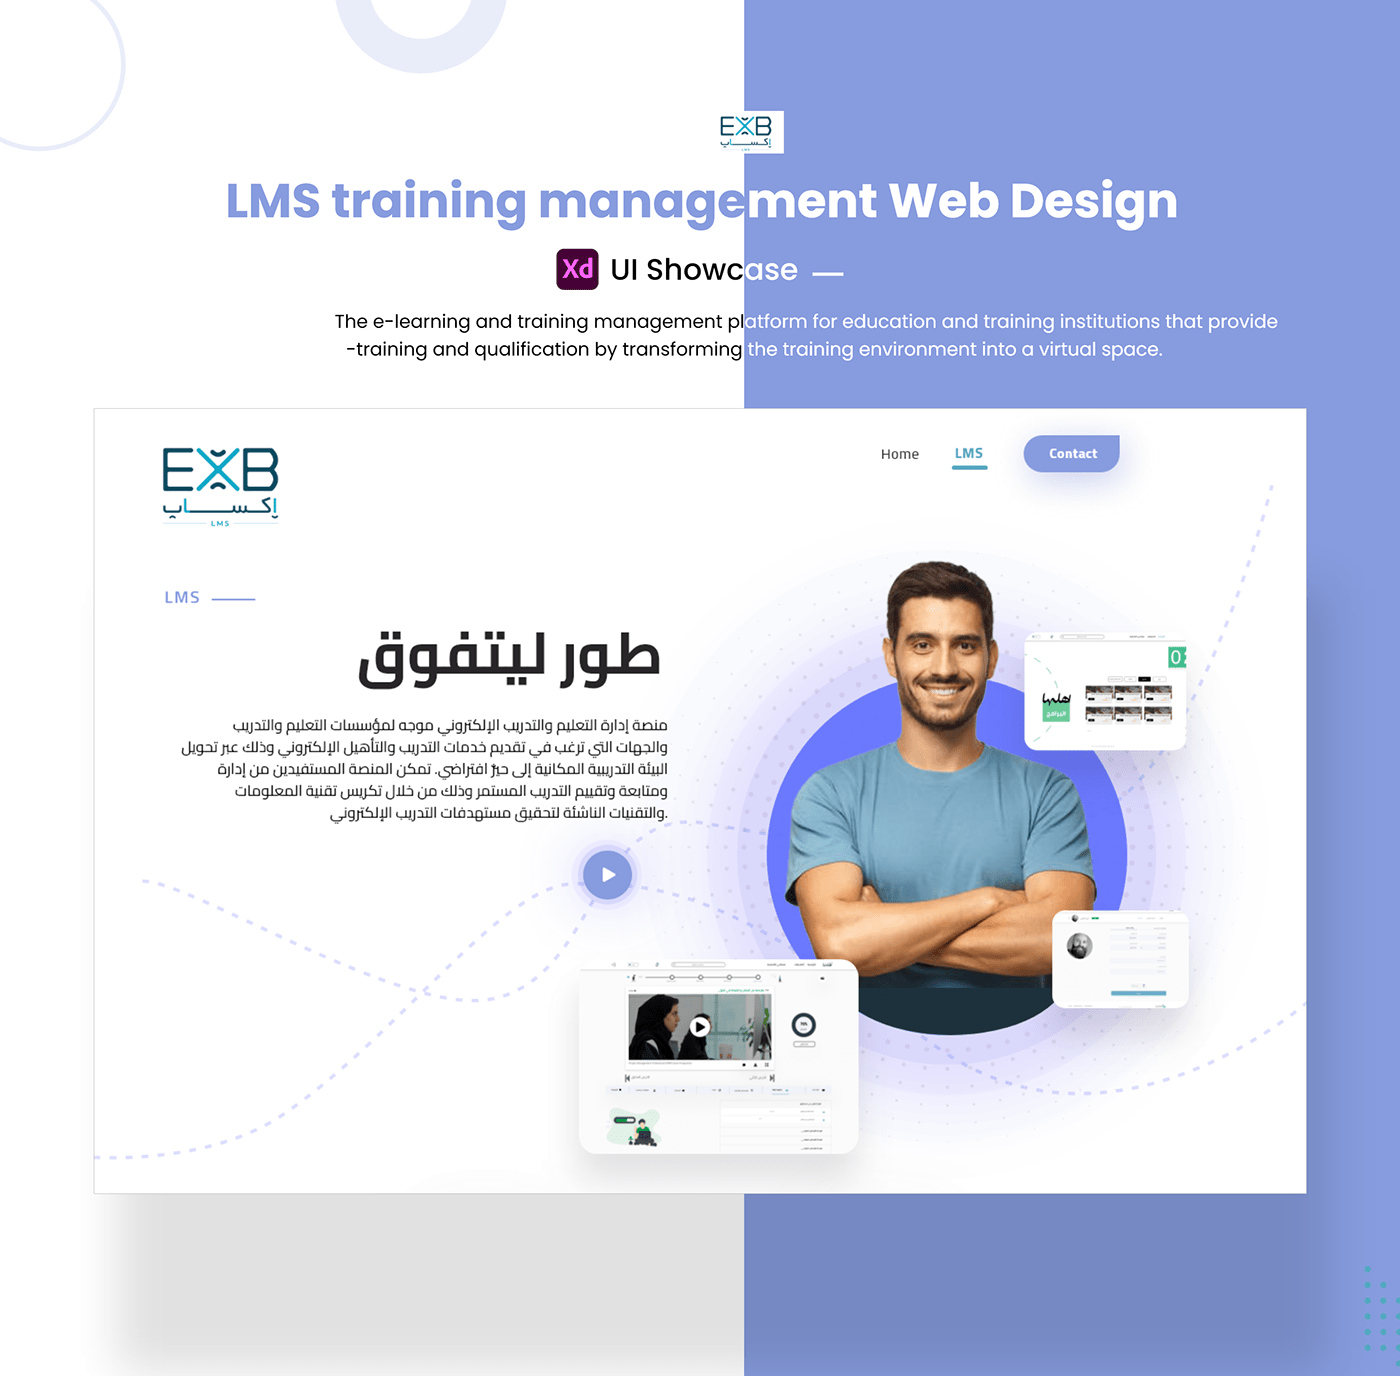 Ecommerce landing page learn Management System online study training UI/UX ux Website